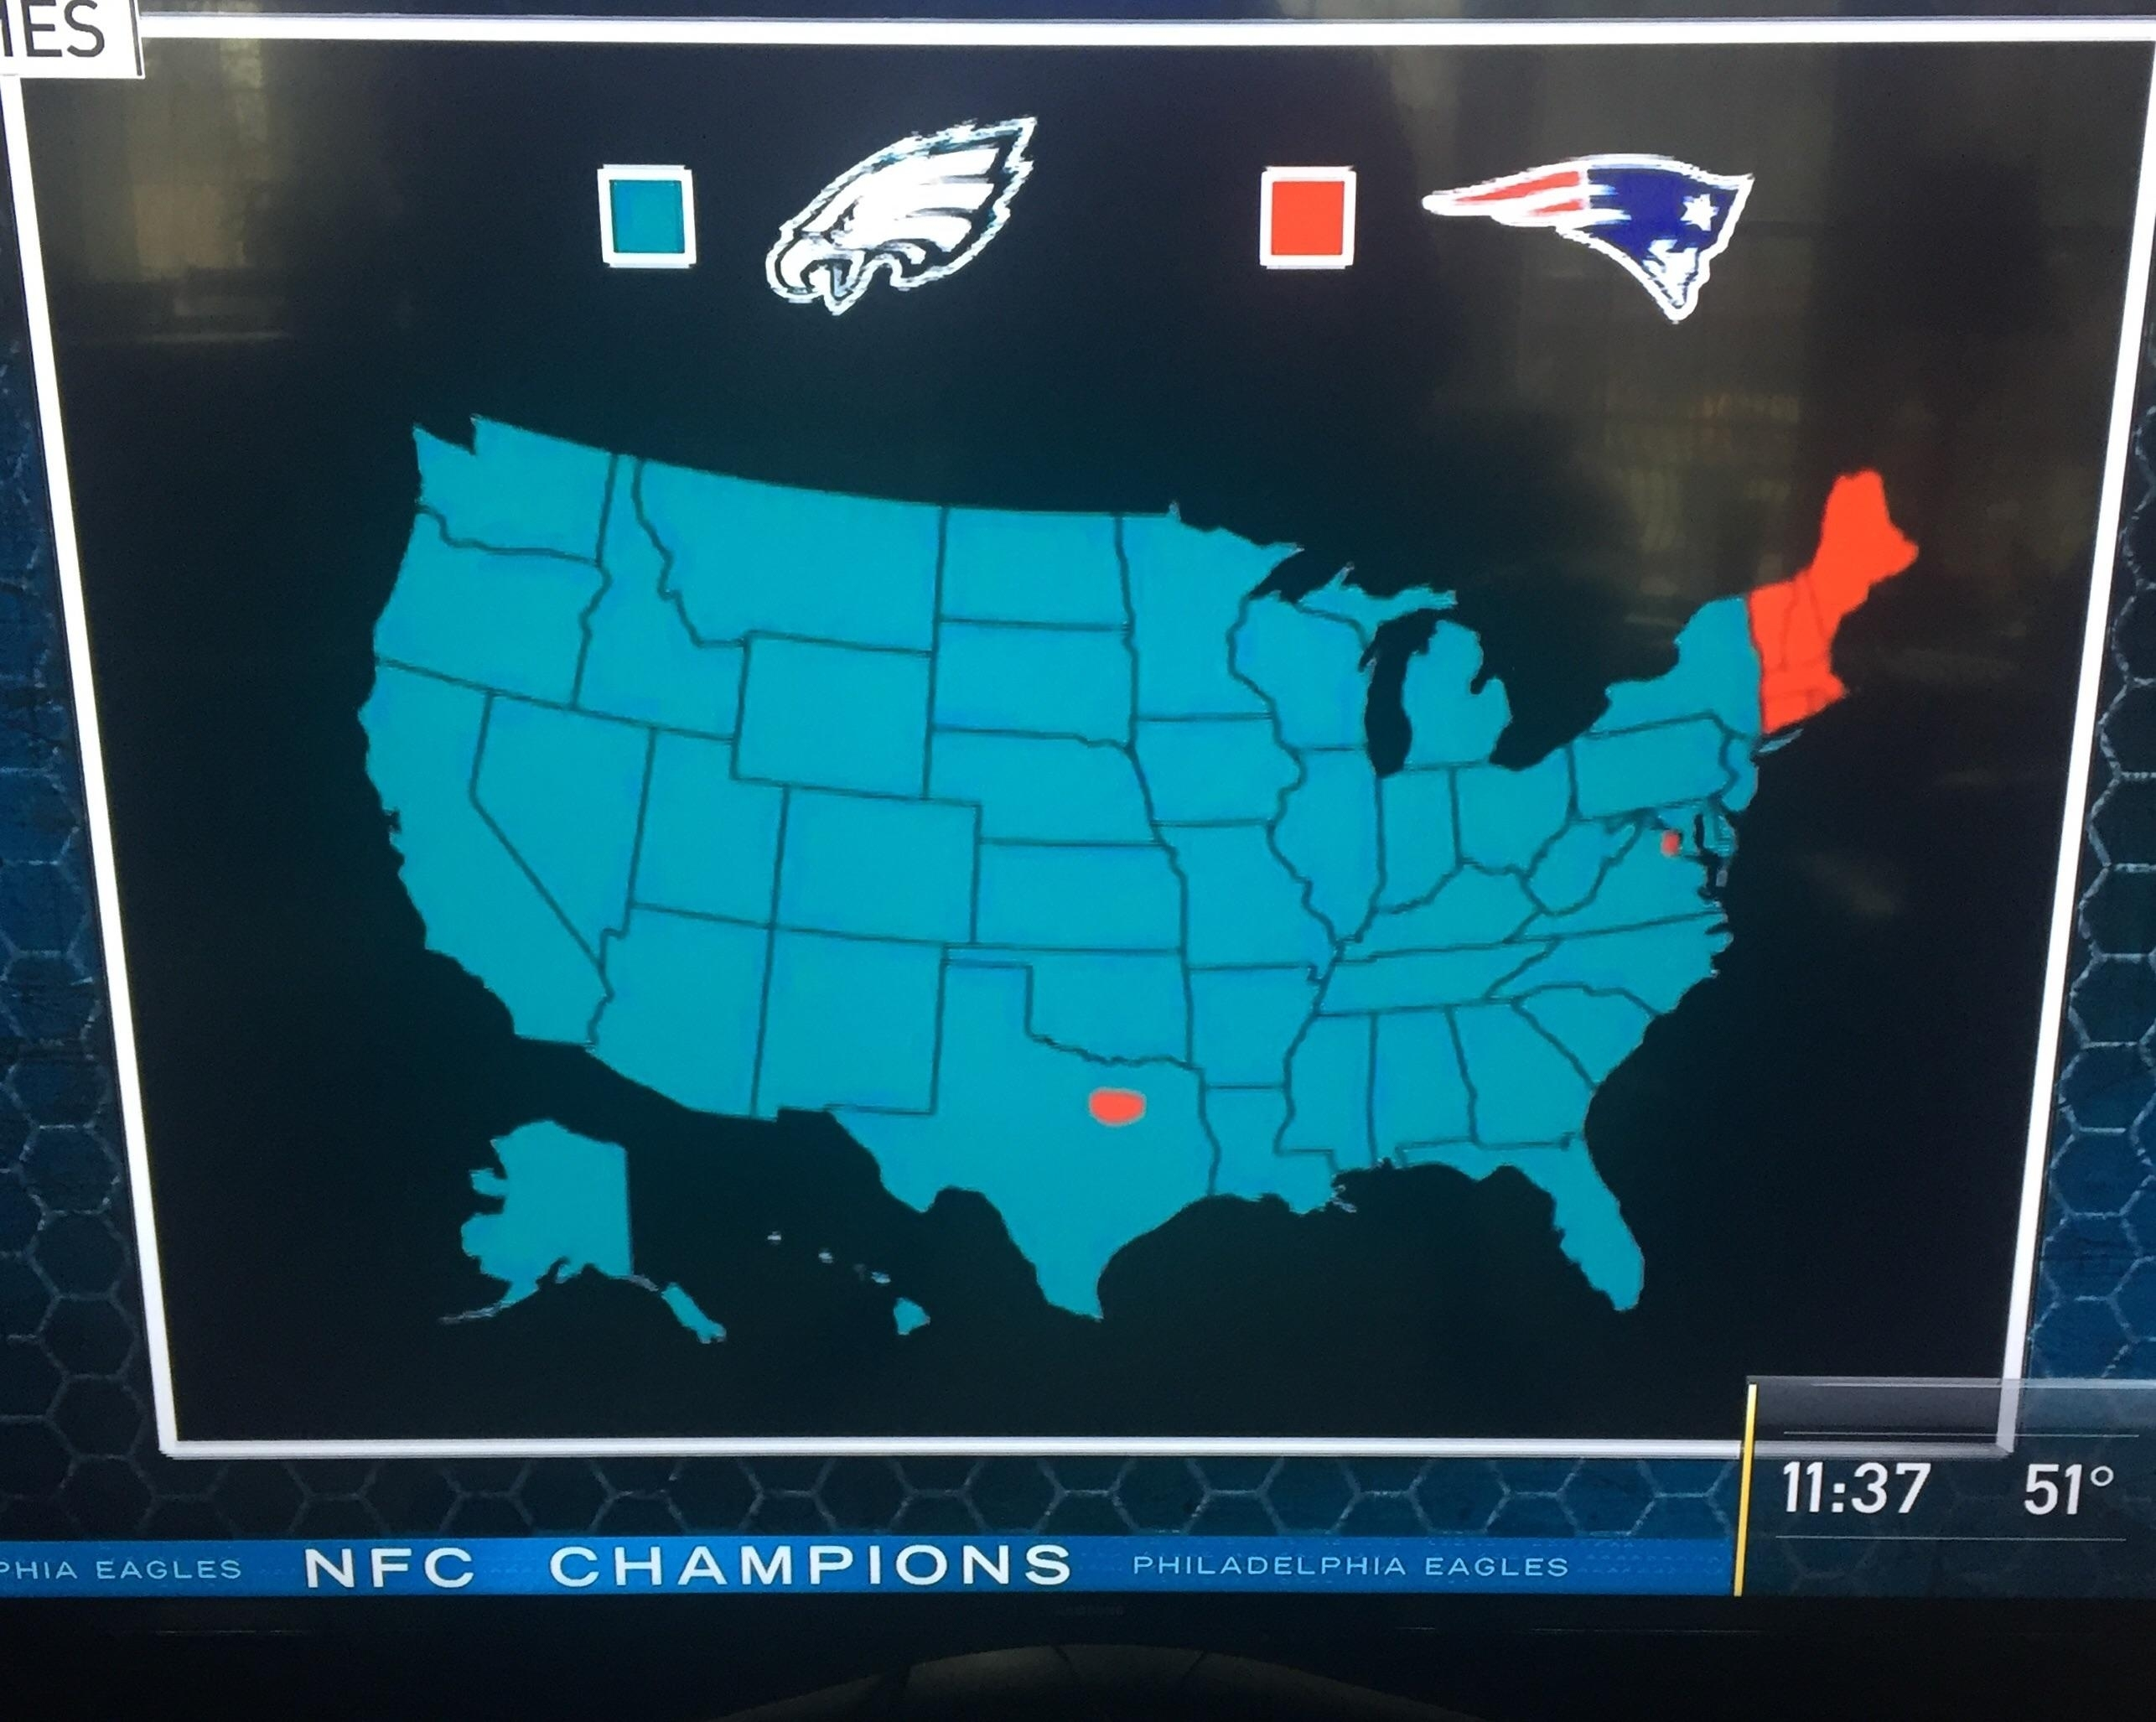 """Who Are You Rooting For In Super Bowl 52?"""" : Eagles in Map Of Rooting For Super Bowl"""